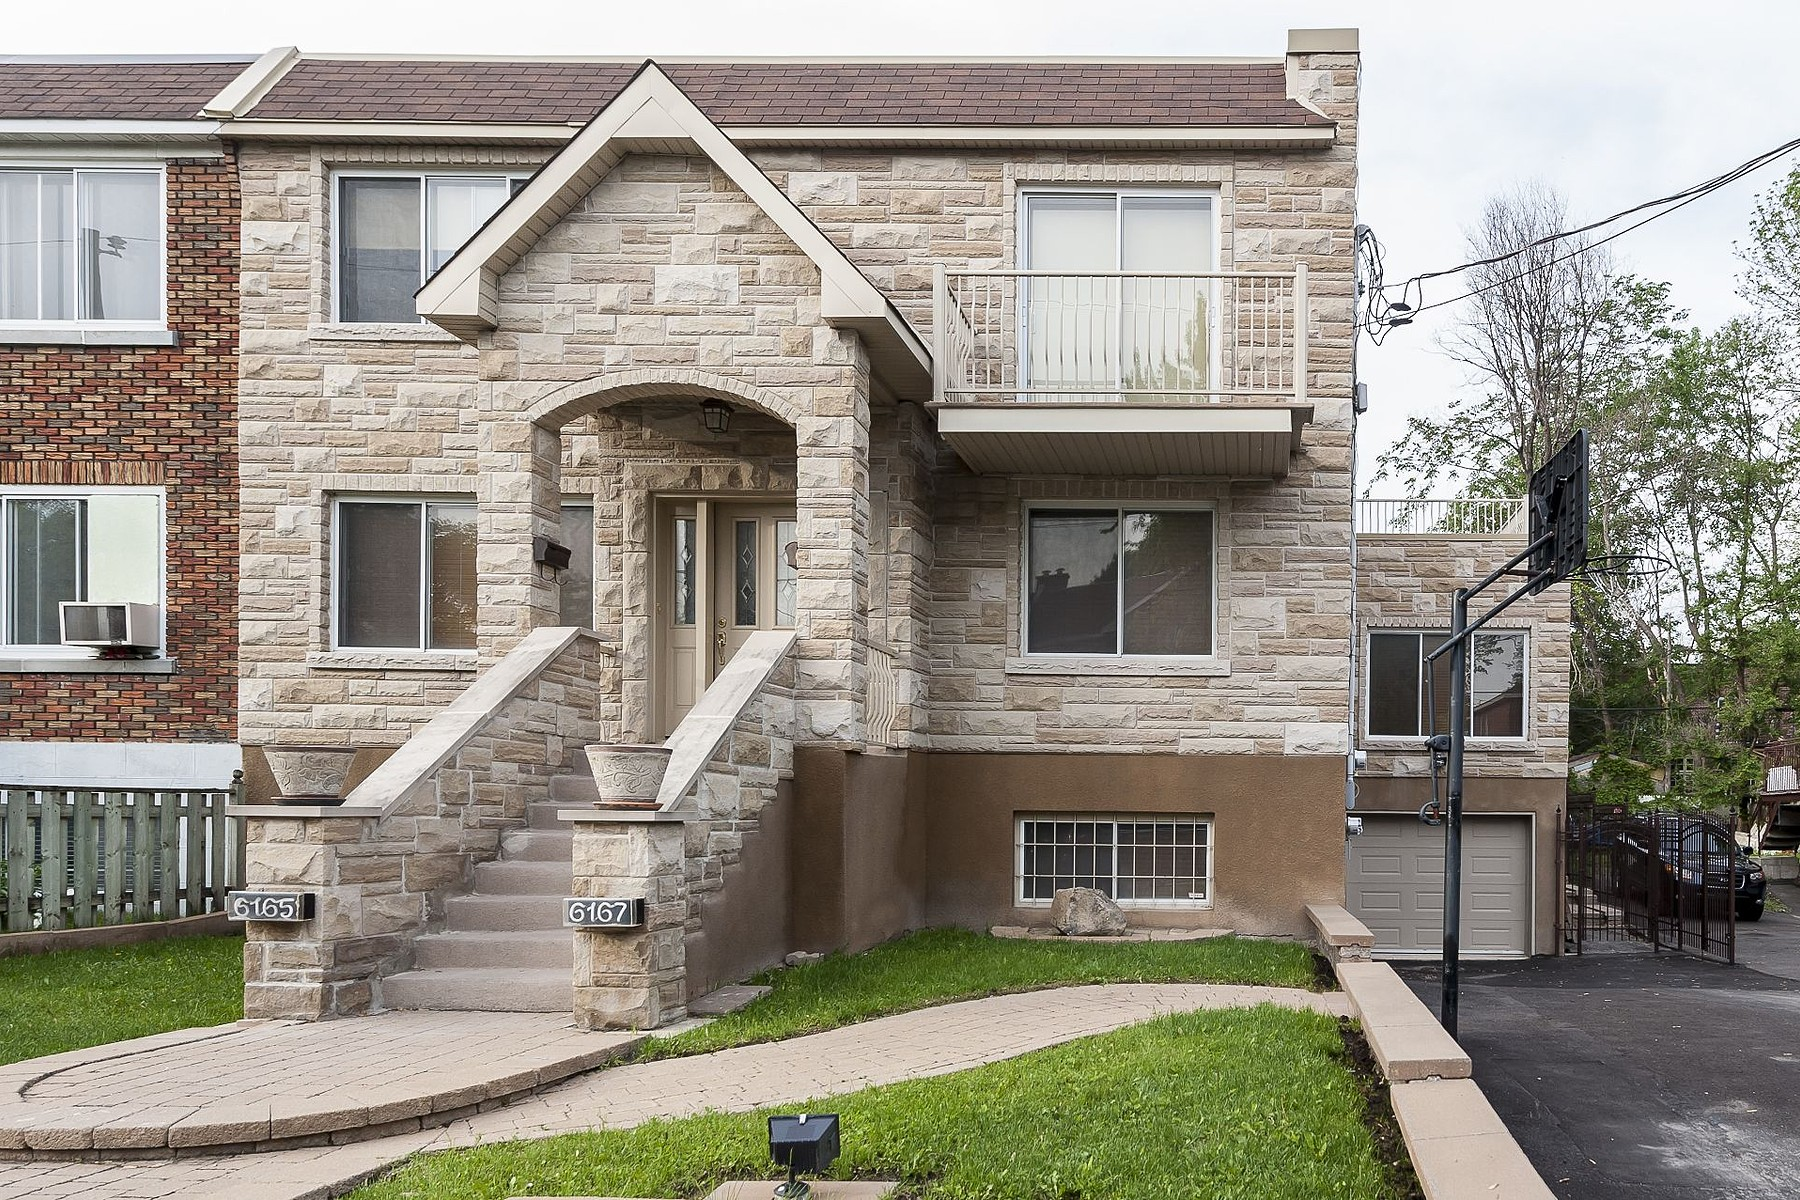 Single Family Home for Sale at Côte-des-Neiges / Notre-Dame-de-Grâce (Montréal), Montréal 6165 Av. MacDonald Montreal, Quebec H3X2W9 Canada